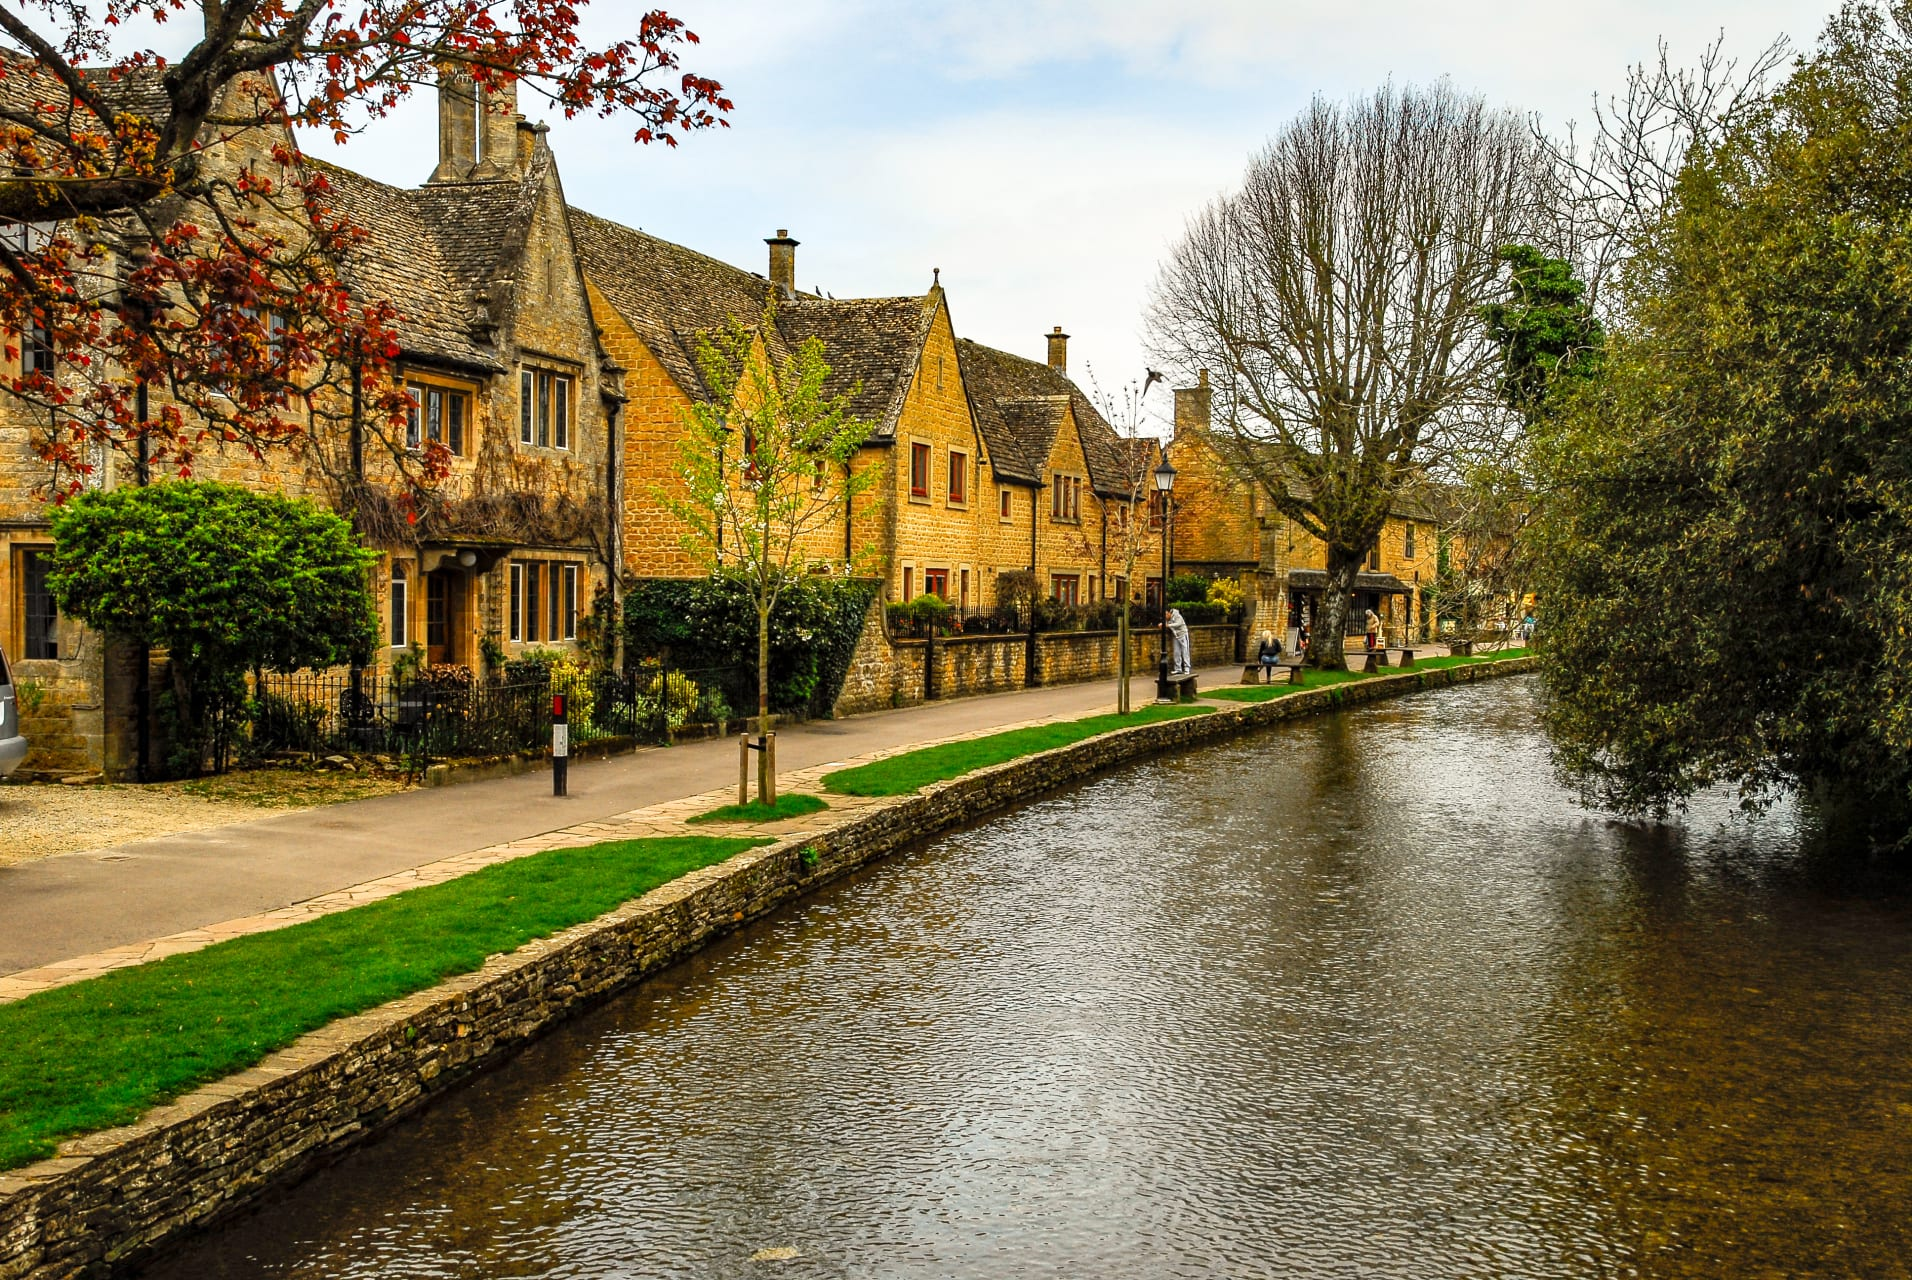 Cotswolds - The Golden Cotswolds - Bourton-on-the-Water